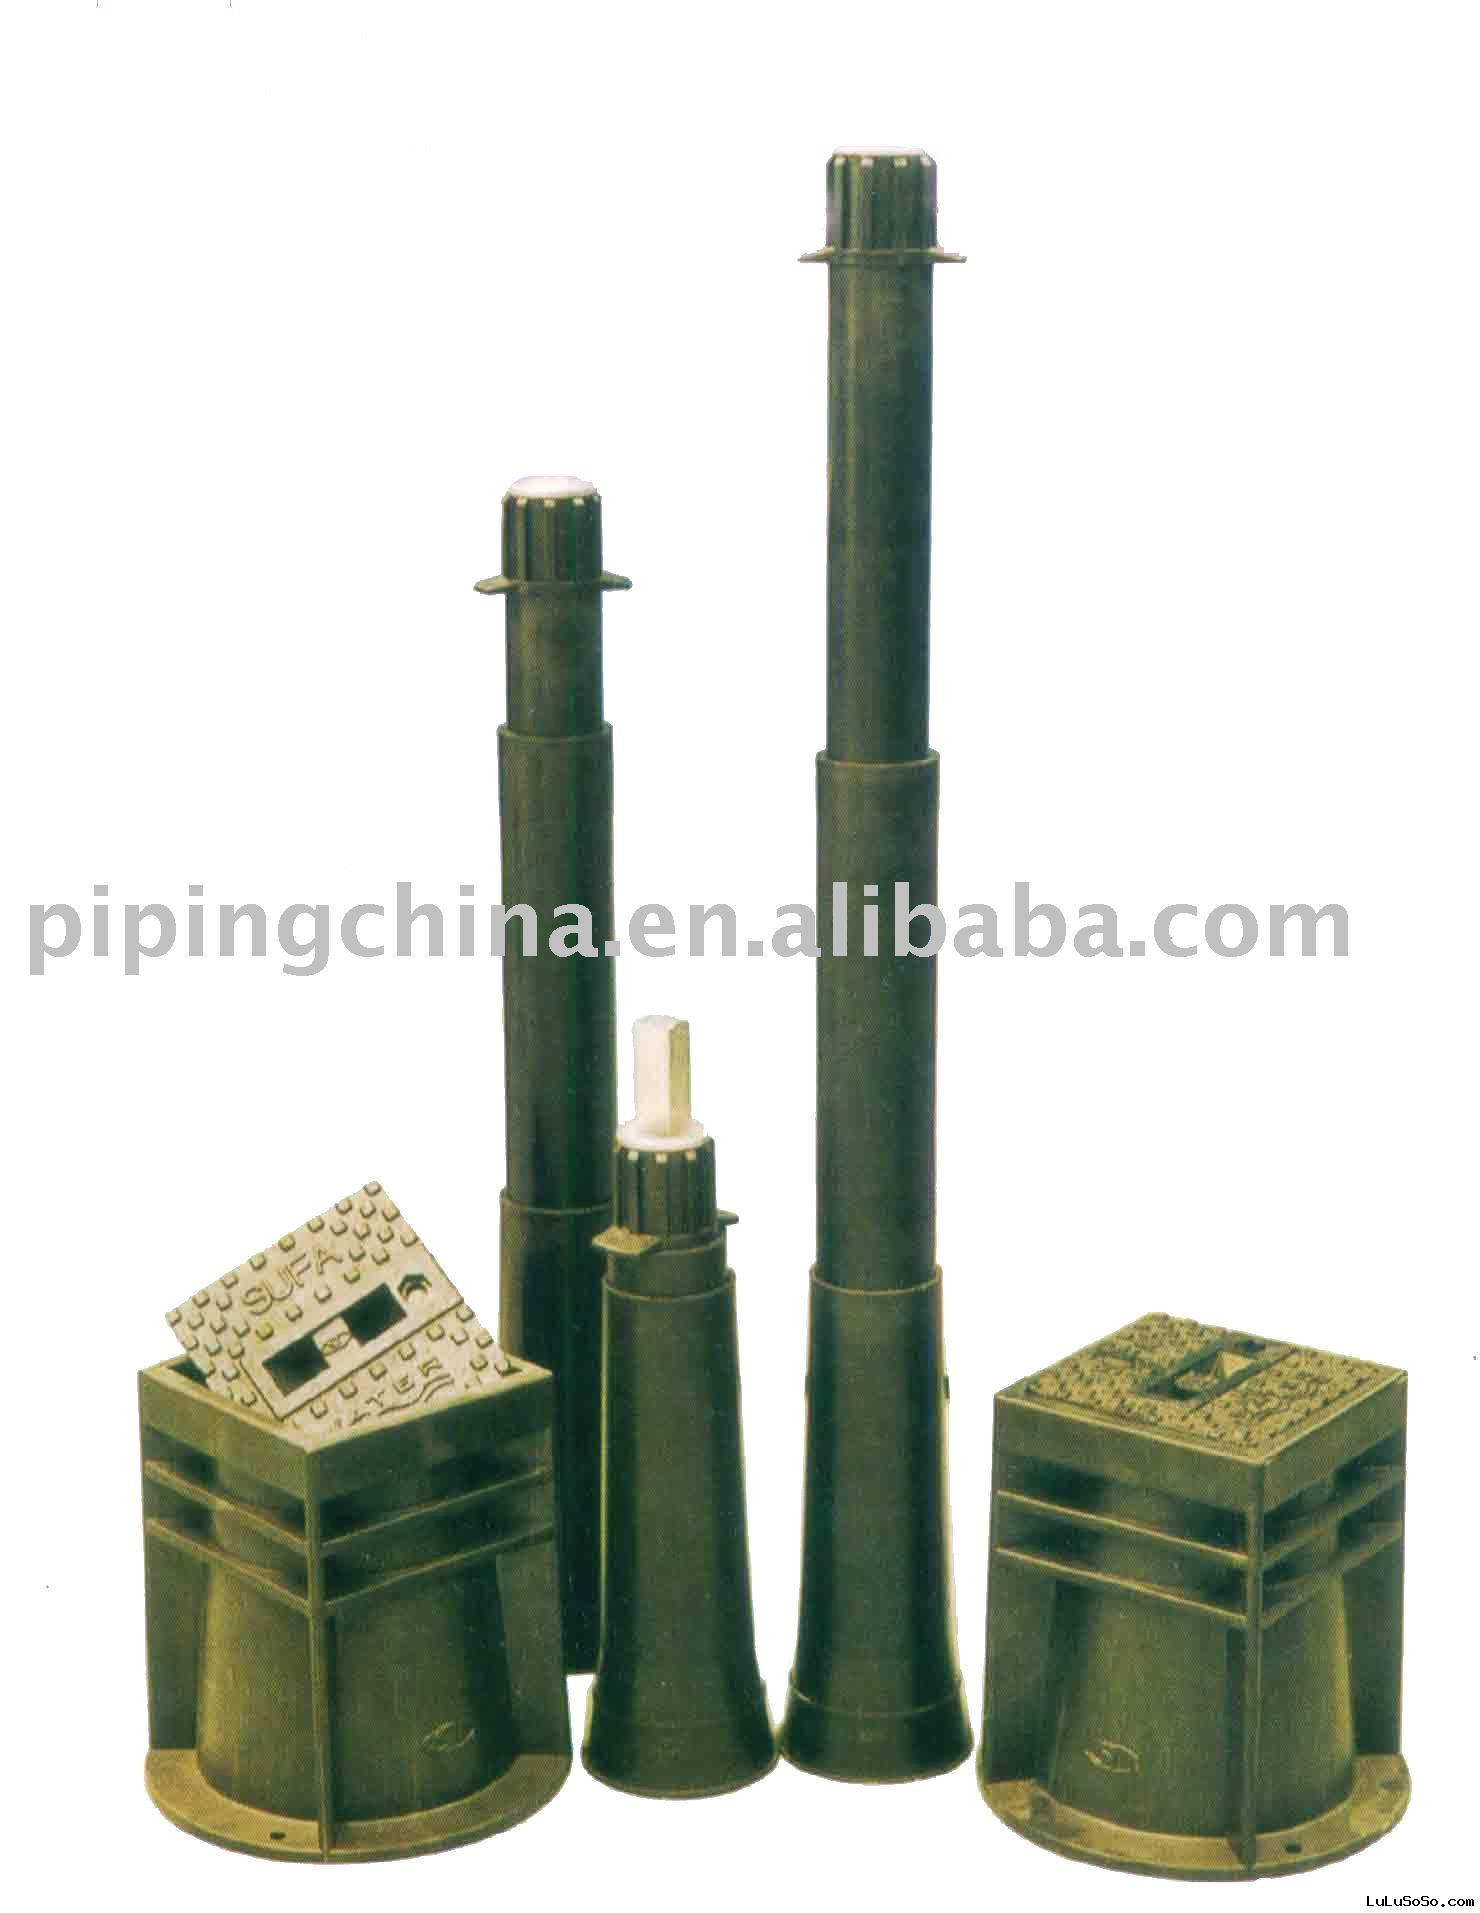 Accessory for underground valve (extension spindle and surface box)